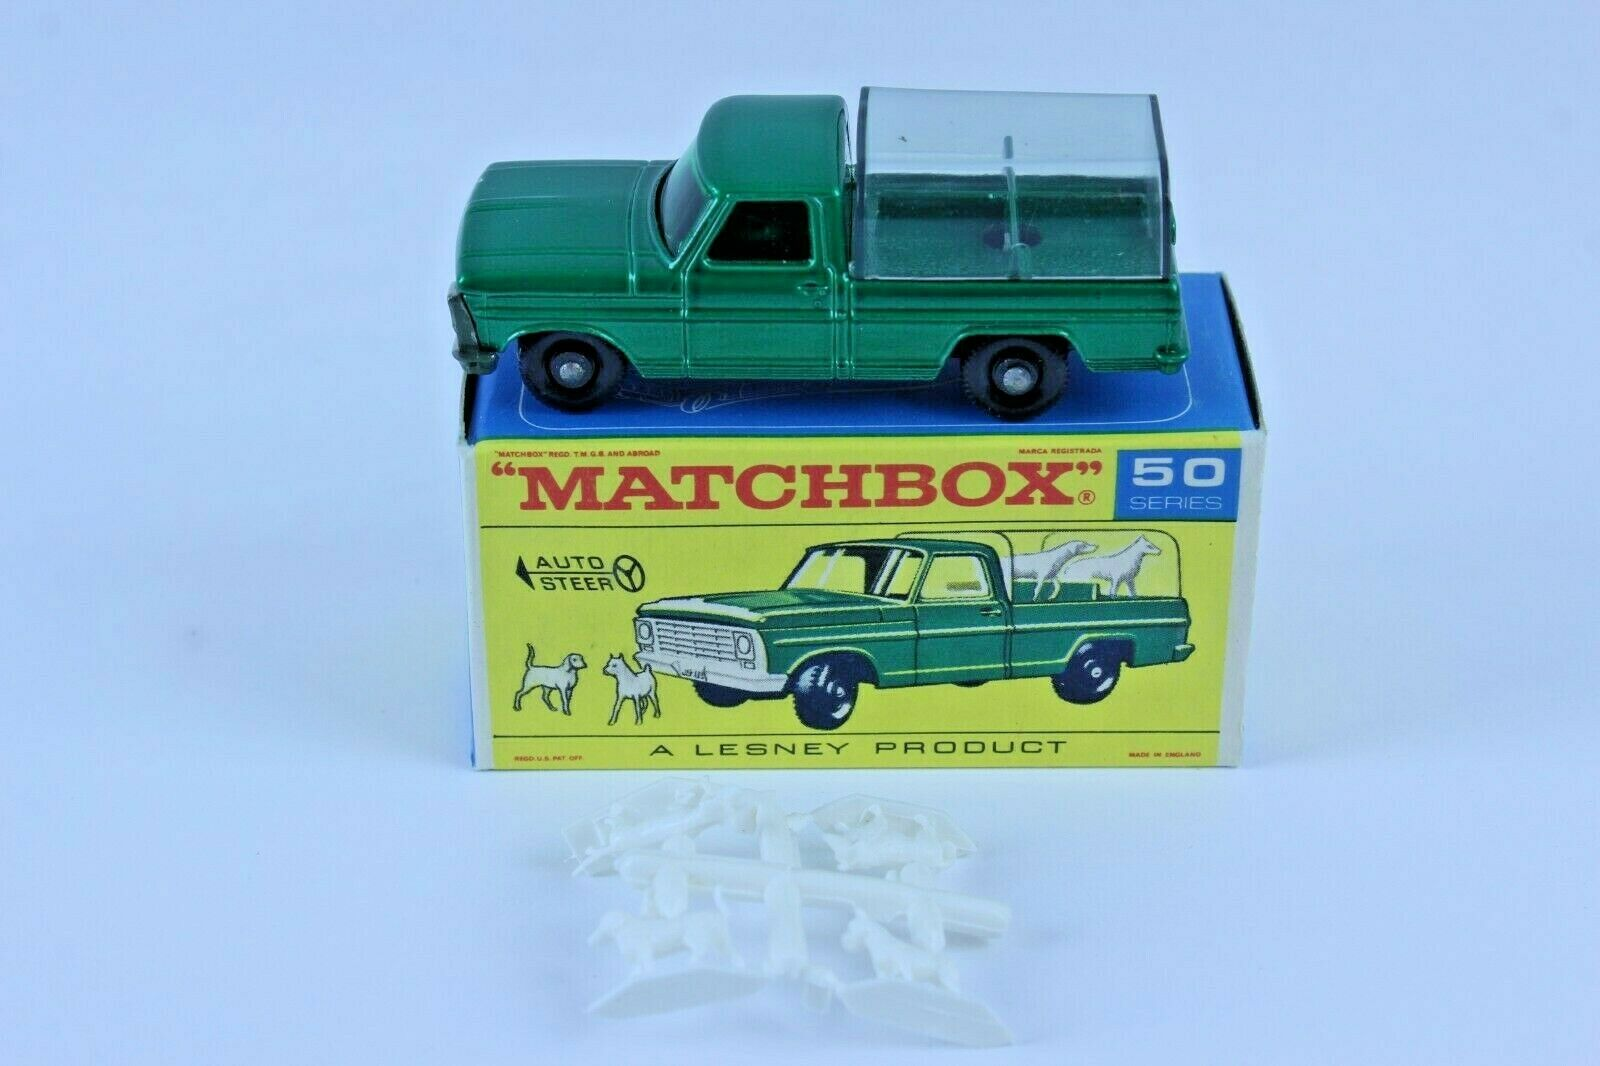 FANTASTIC MATCHBOX  50 KENNEL TRUCK MINT NEW OLD STORE STOCK FROM CASE